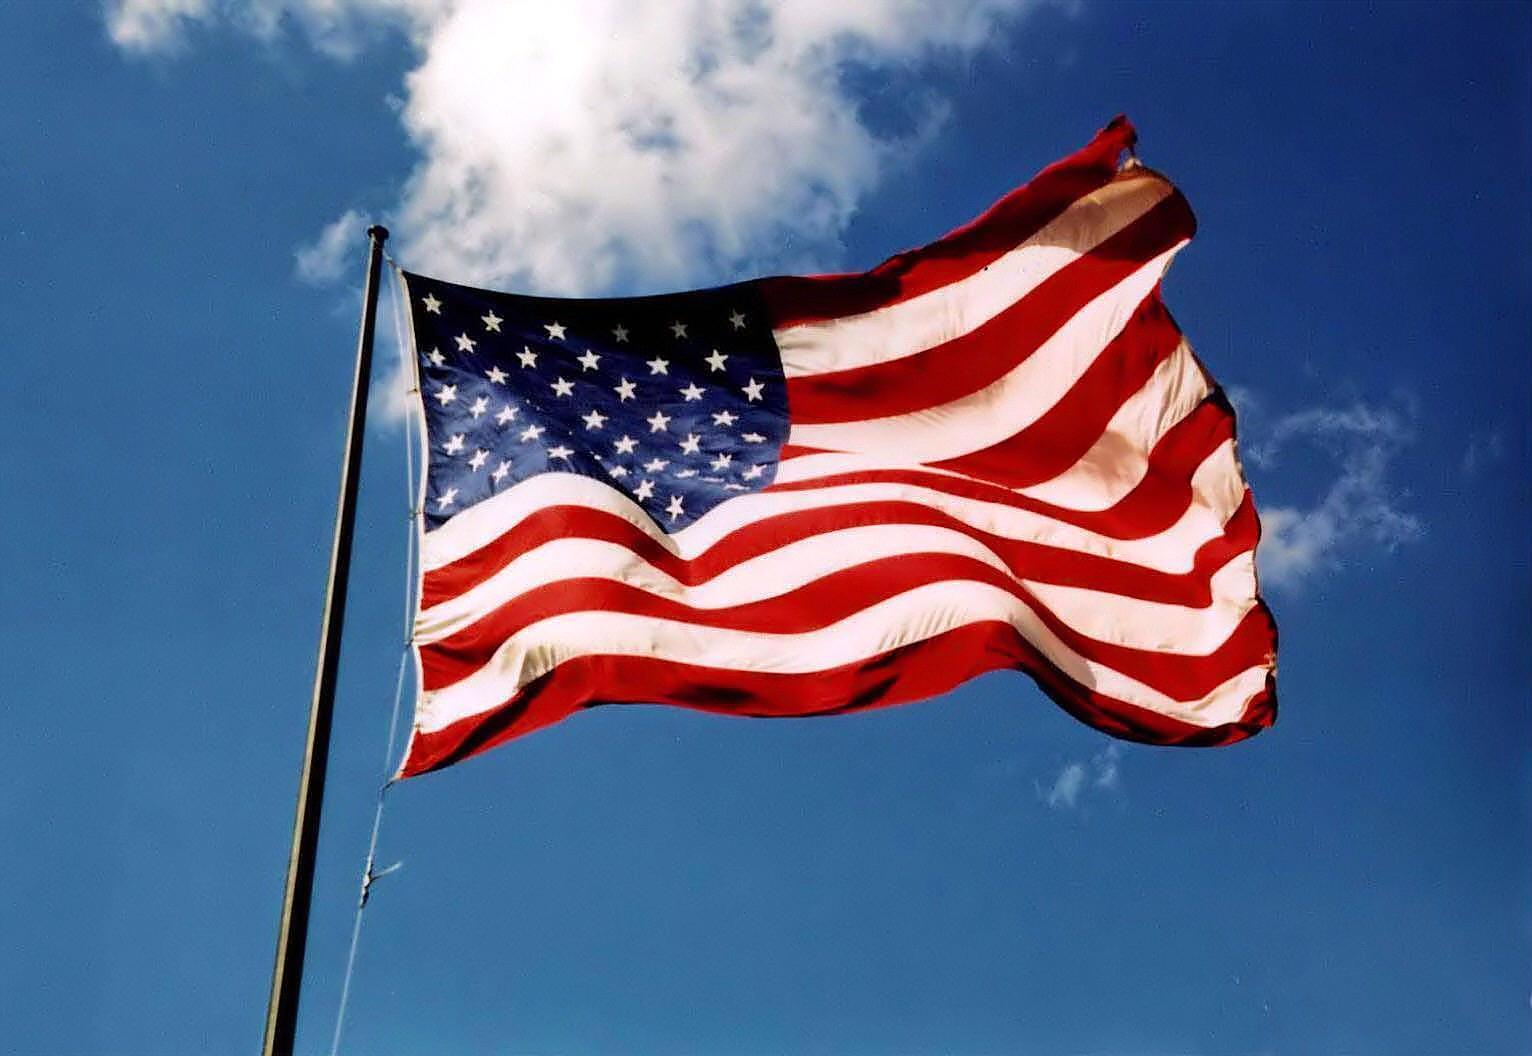 American flag, Grammarly, Memorial Day, Memorial Day Writers Project, writing, war